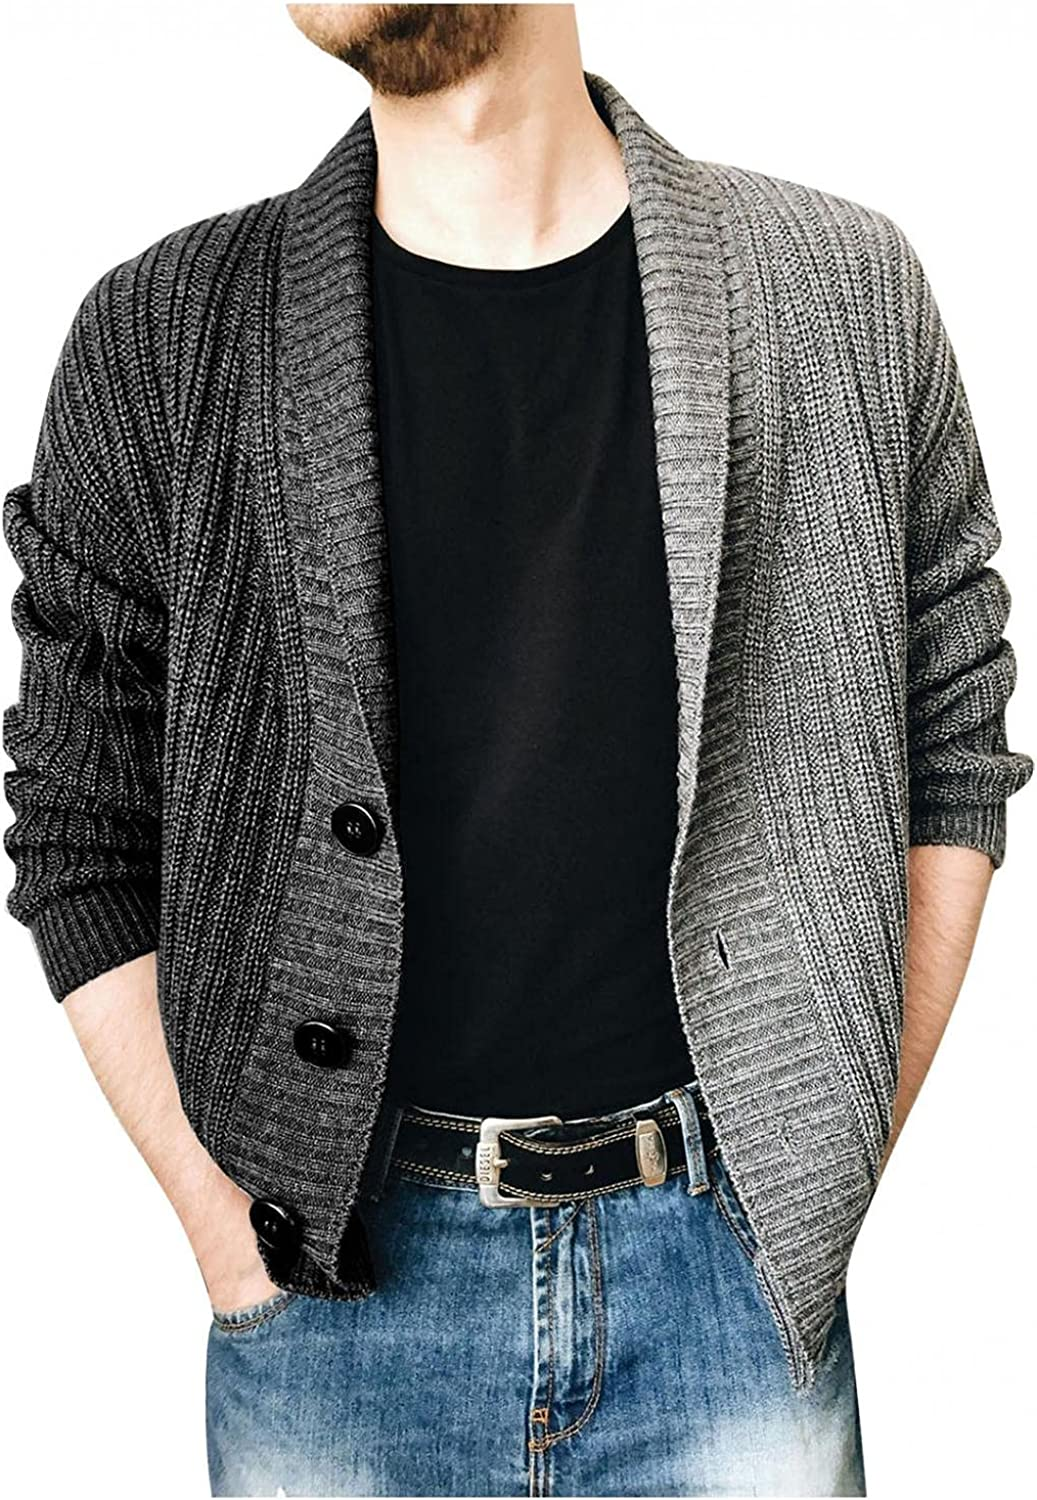 Beshion Men's Cardigan Sweater Lightweight Long Sleeve Two-Color Stitching Lapel Single-Breasted Knit Sweater Coat